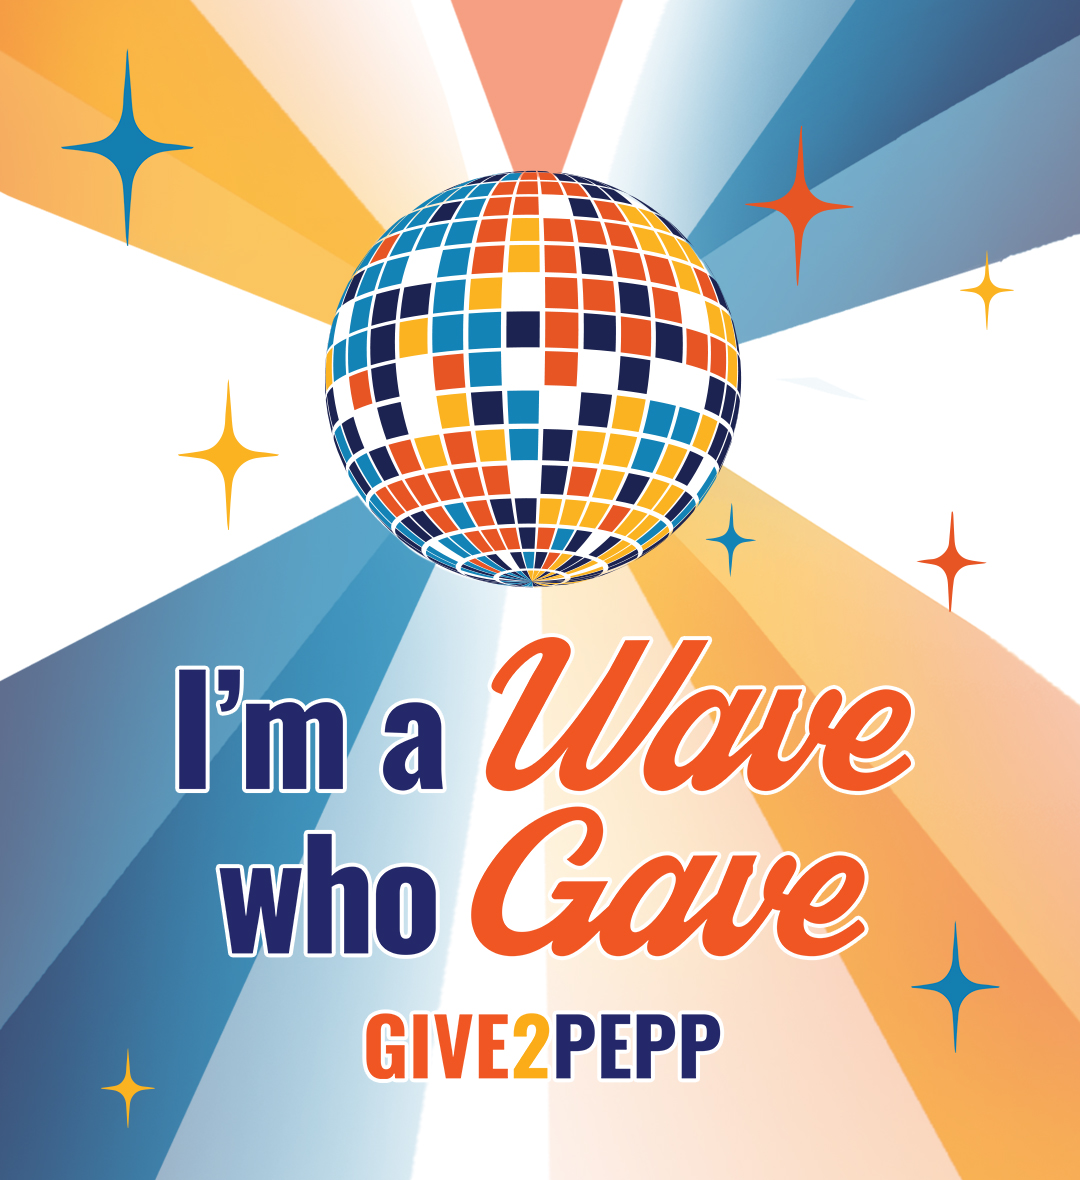 Give2Pepp Facebook - I'm a Wave who Gave